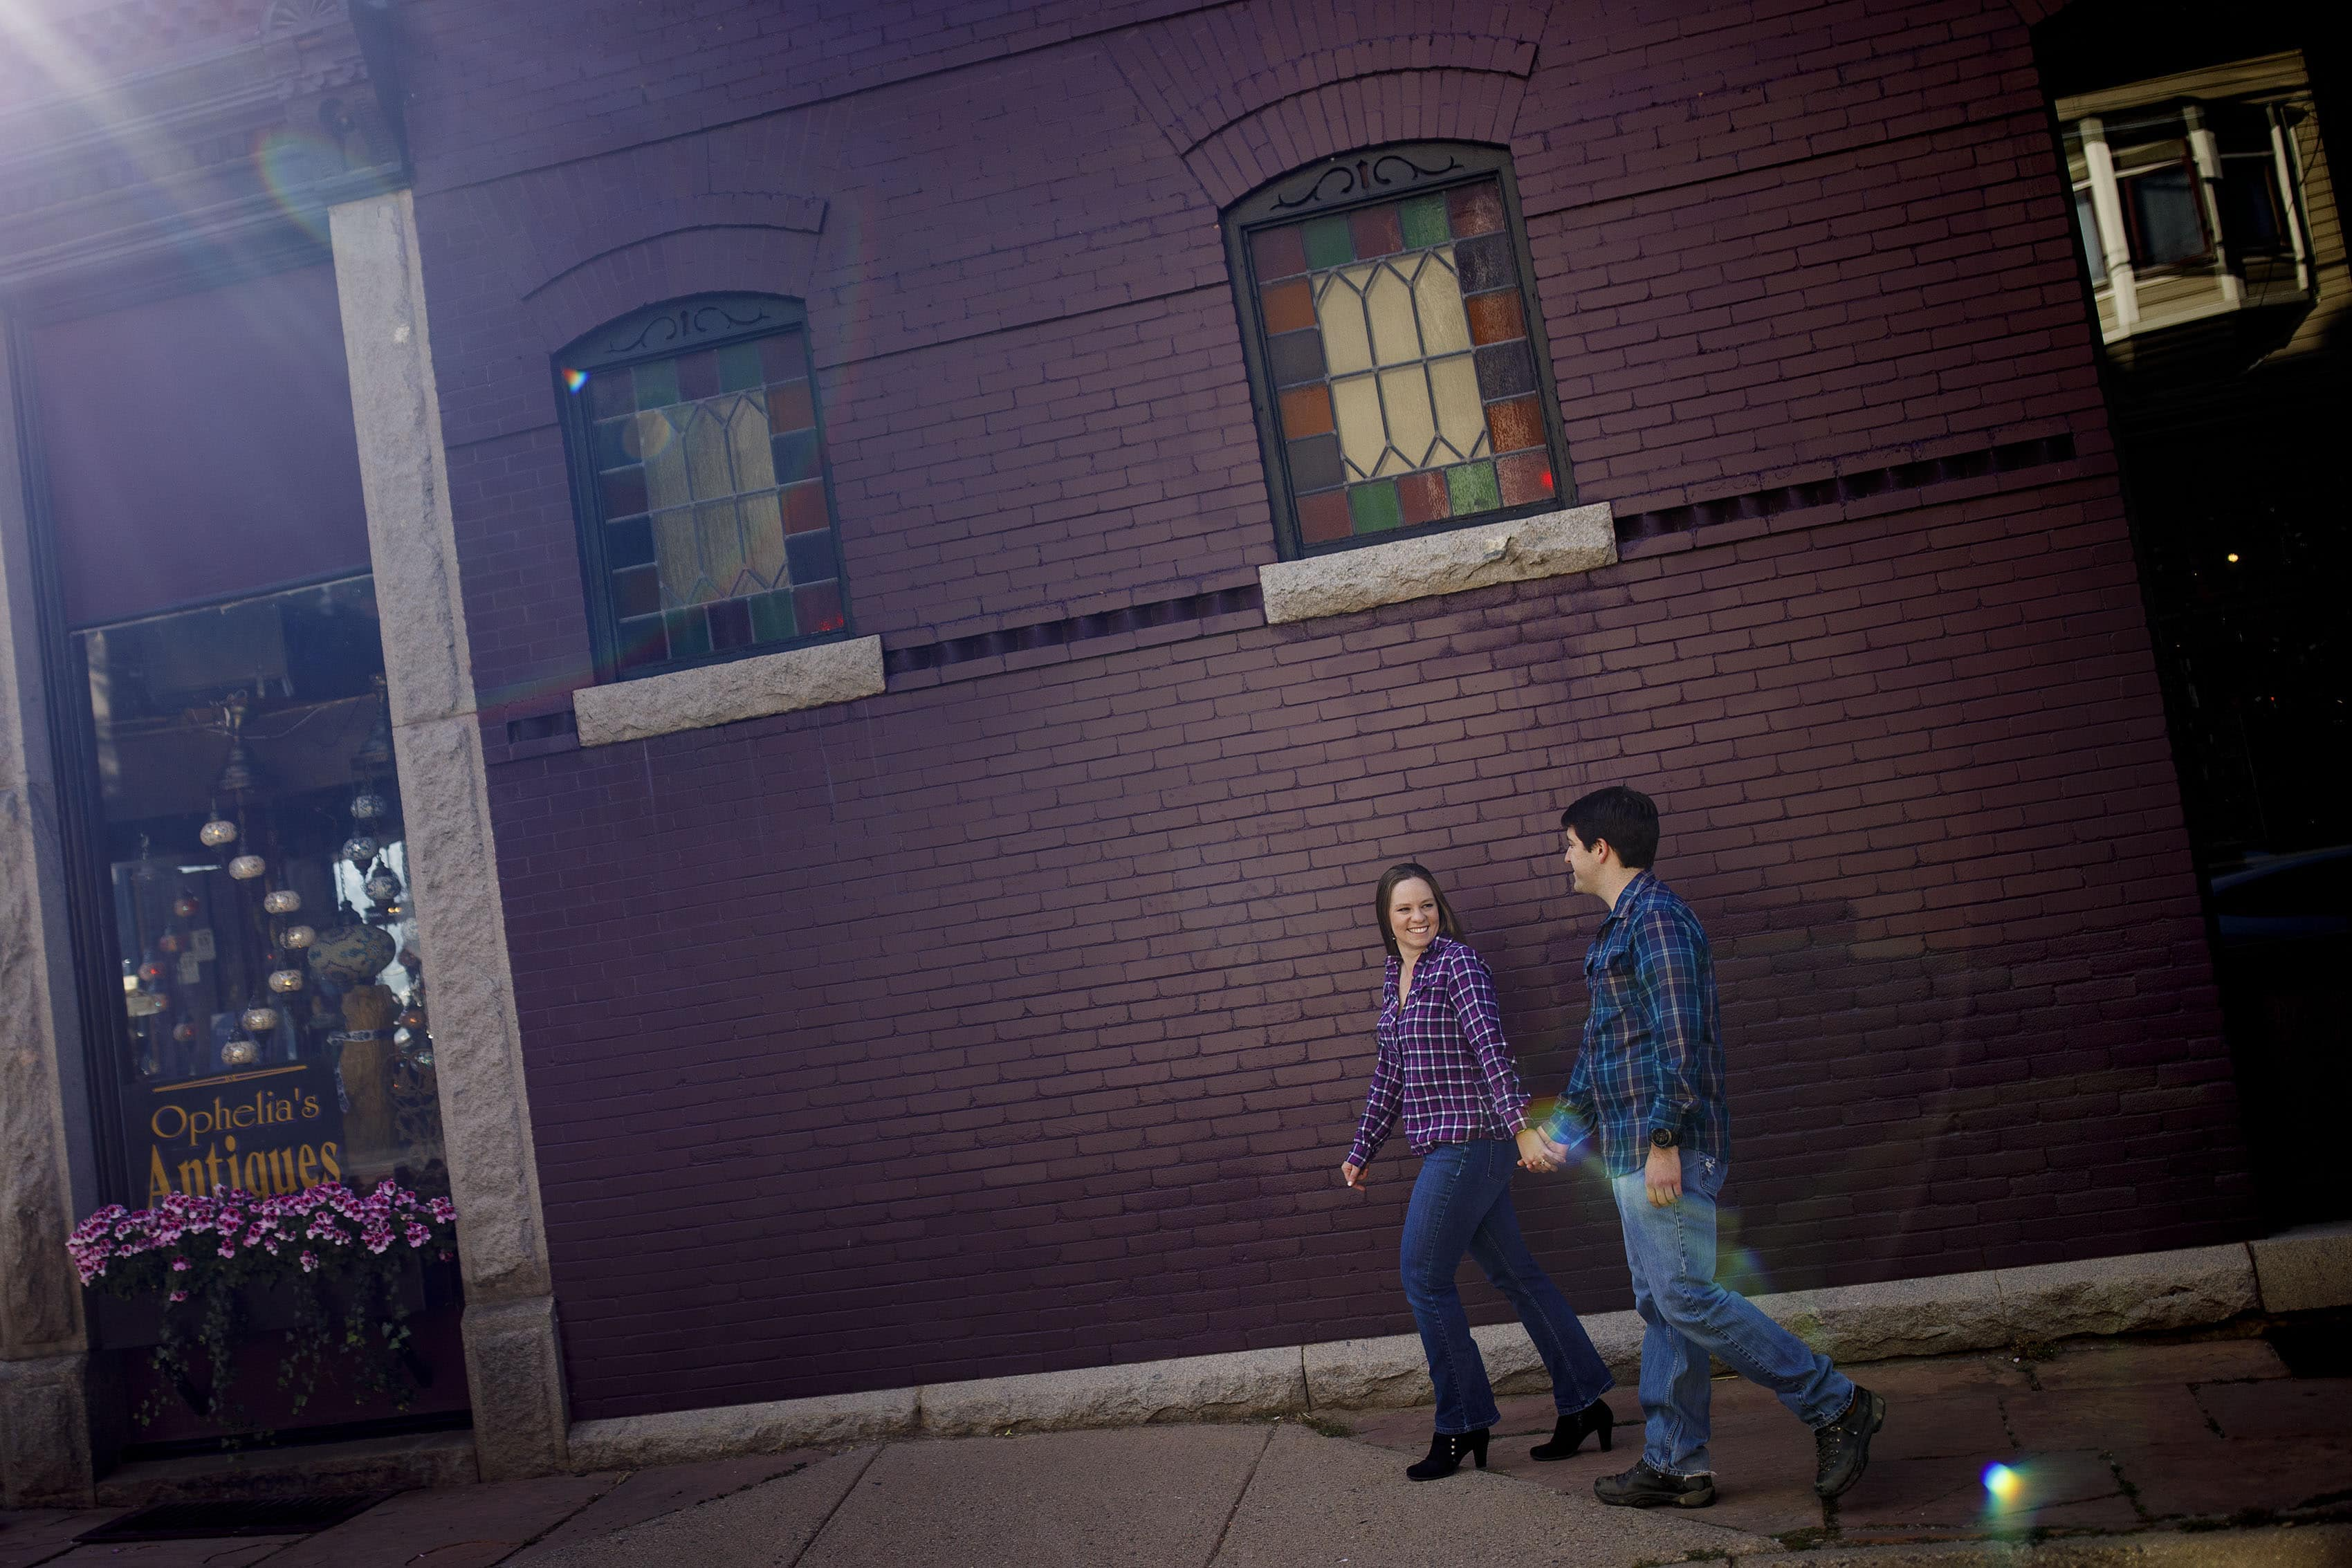 A couple walks by Ophelia's Antiques in Georgetown, Colorado during their engagement photos